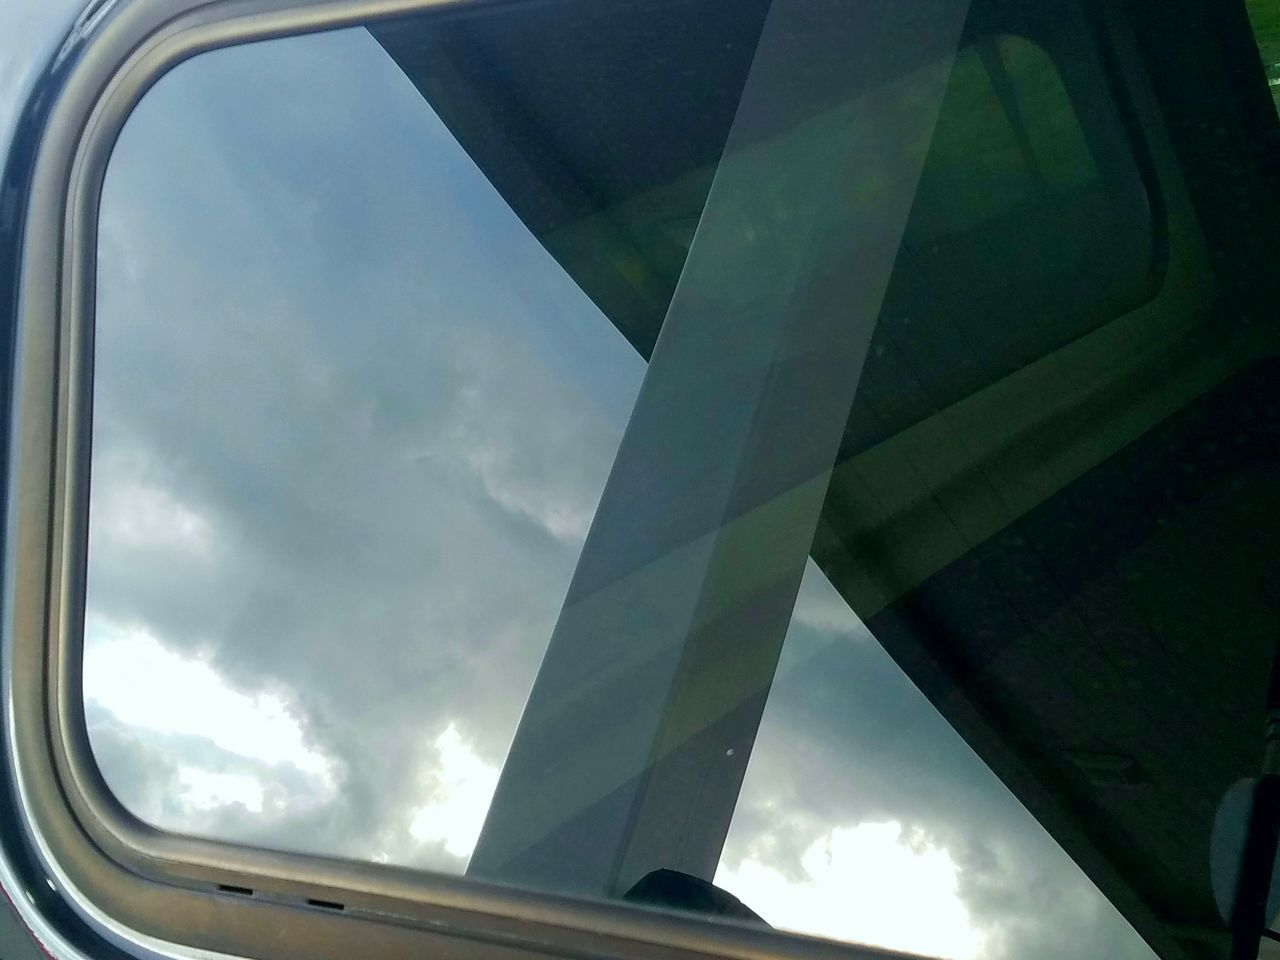 window, sky, transportation, mode of transport, day, low angle view, cloud - sky, no people, airplane, outdoors, close-up